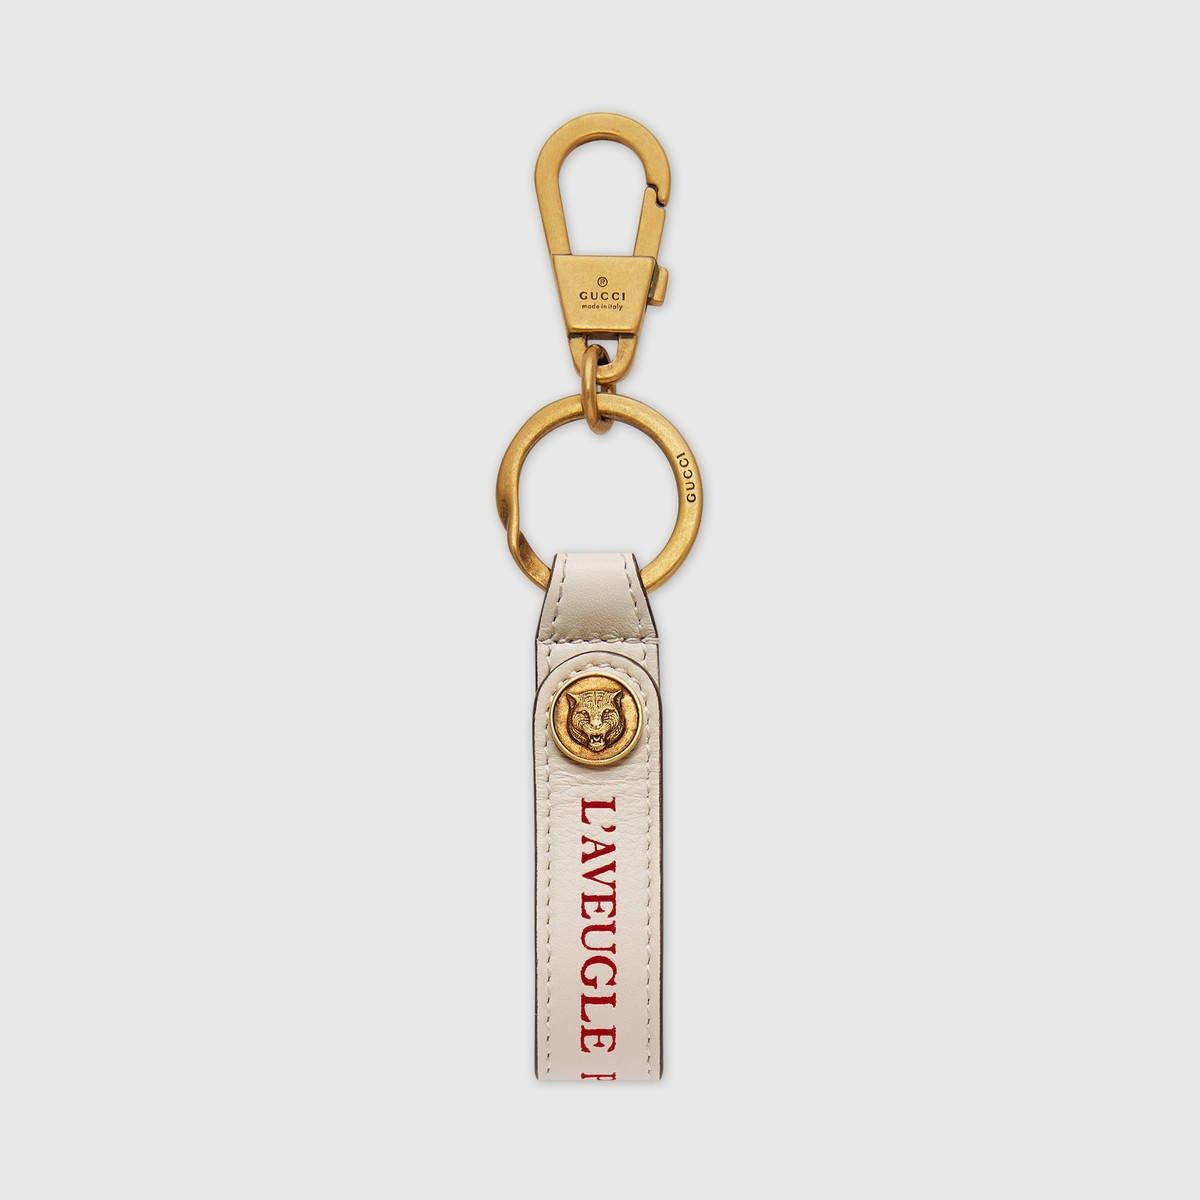 3283f739495 GUCCI Leather key ring - white leather.  gucci